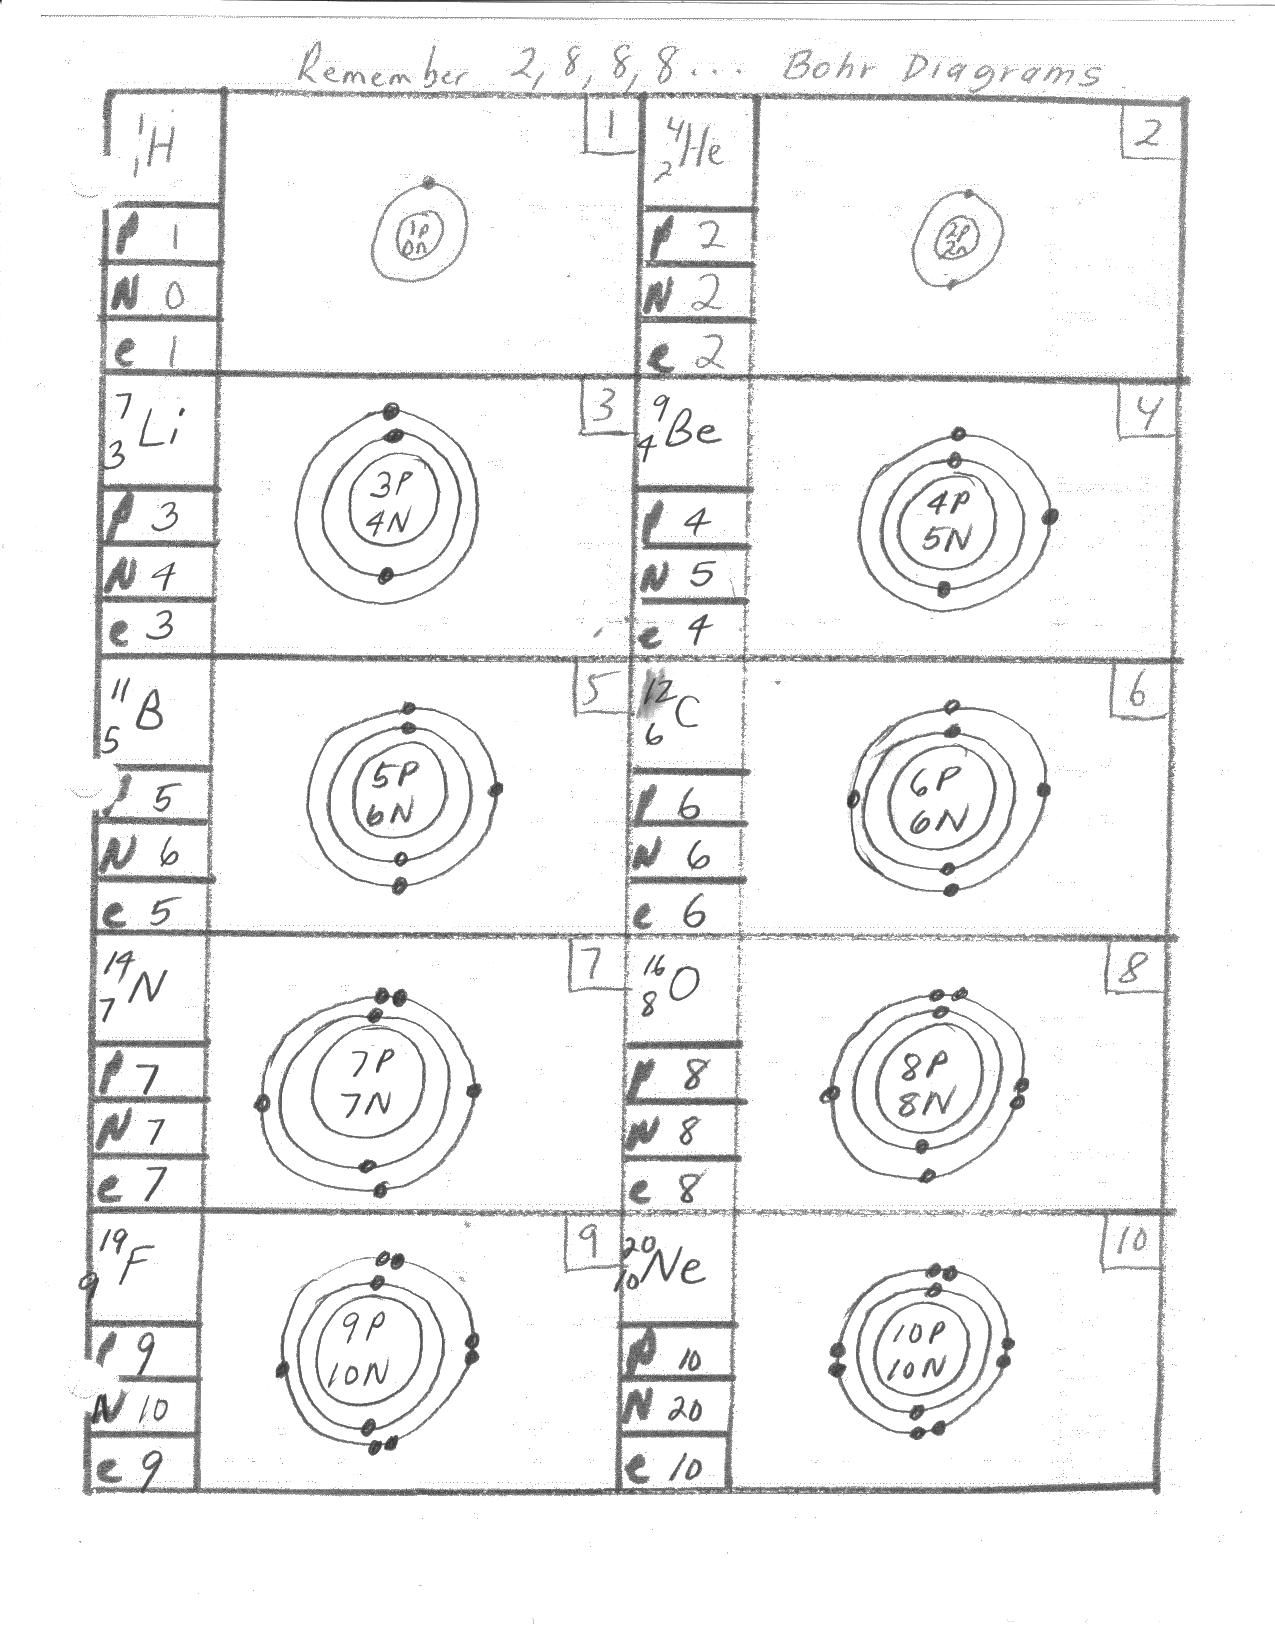 Mar 8 23 Bohr Rutherford Diagrams 1 10 11 20 1 14